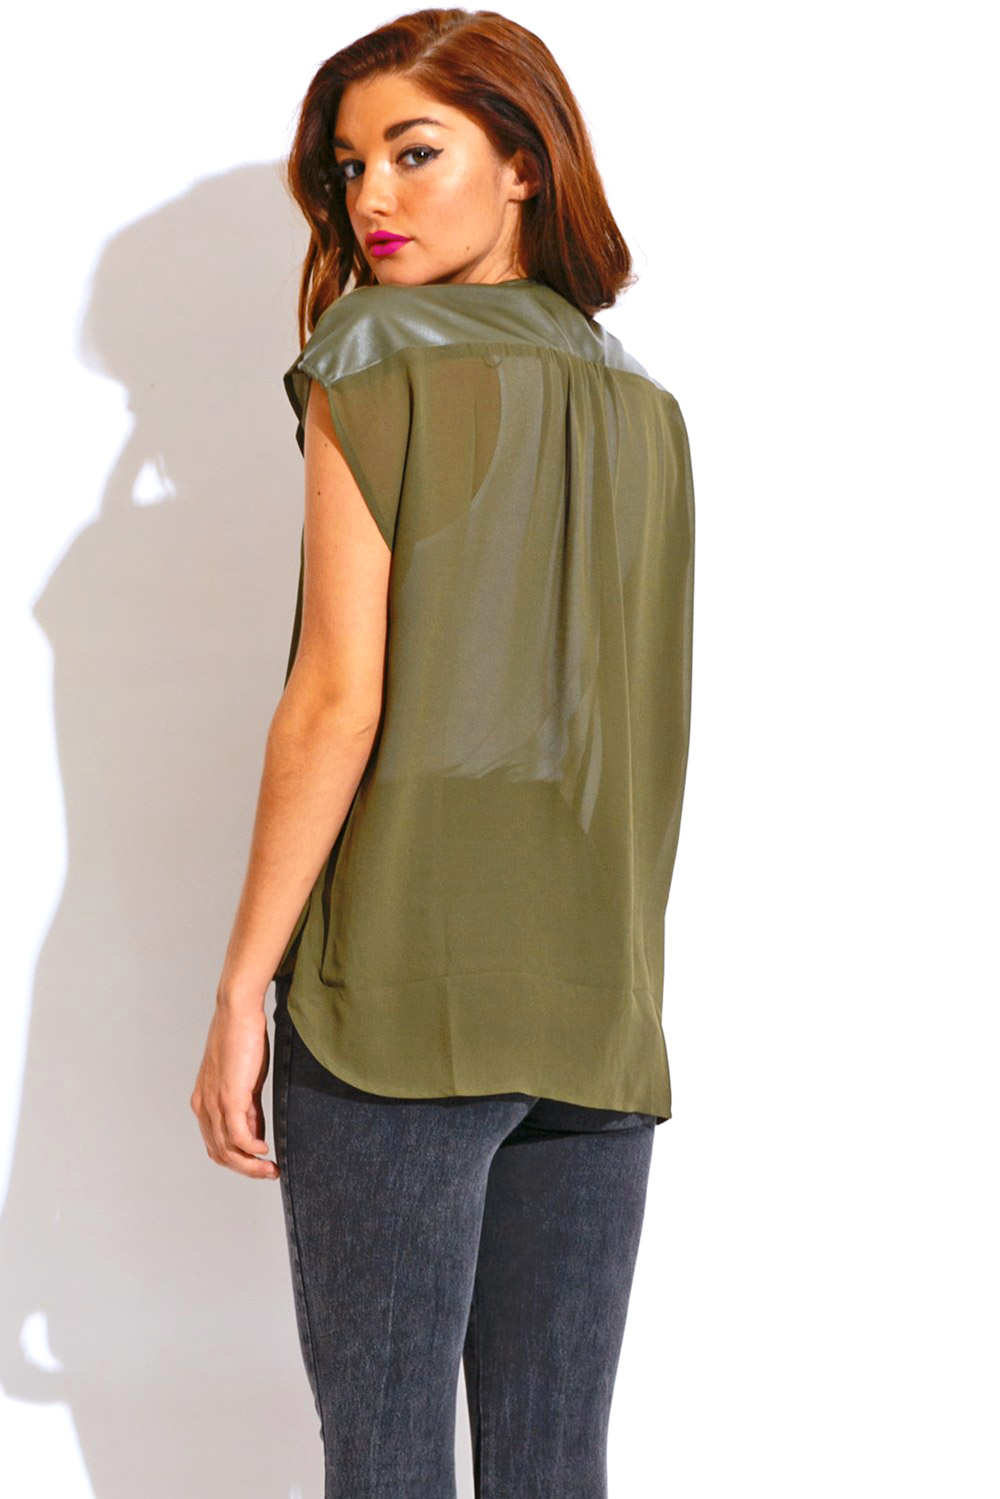 Olive green deep v neck chiffon faux leather trim wrap blouse party top